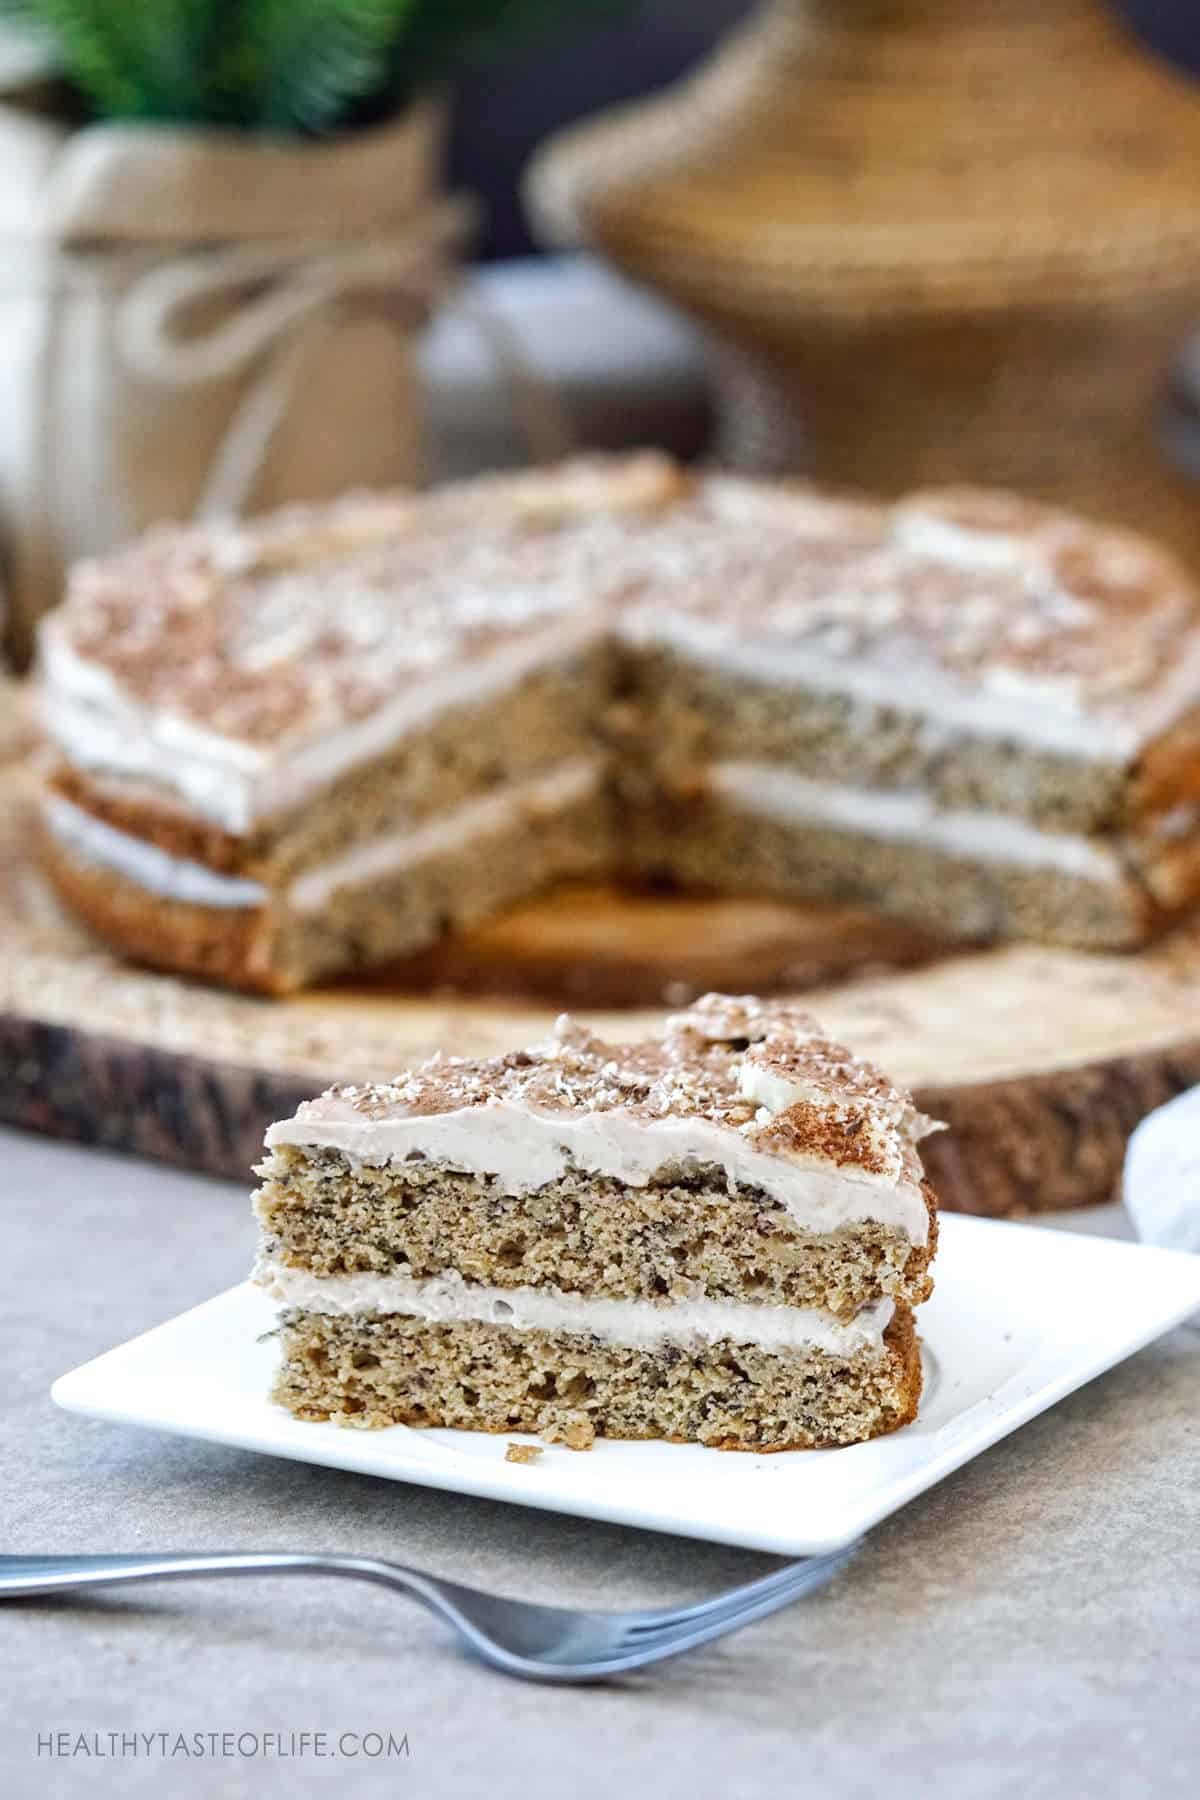 Banana cake gluten free dairy free recipe without refined sugar. A slice of layered gluten free banana cake with dairy free frosting decorated with fresh bananas and shaved chocolate.